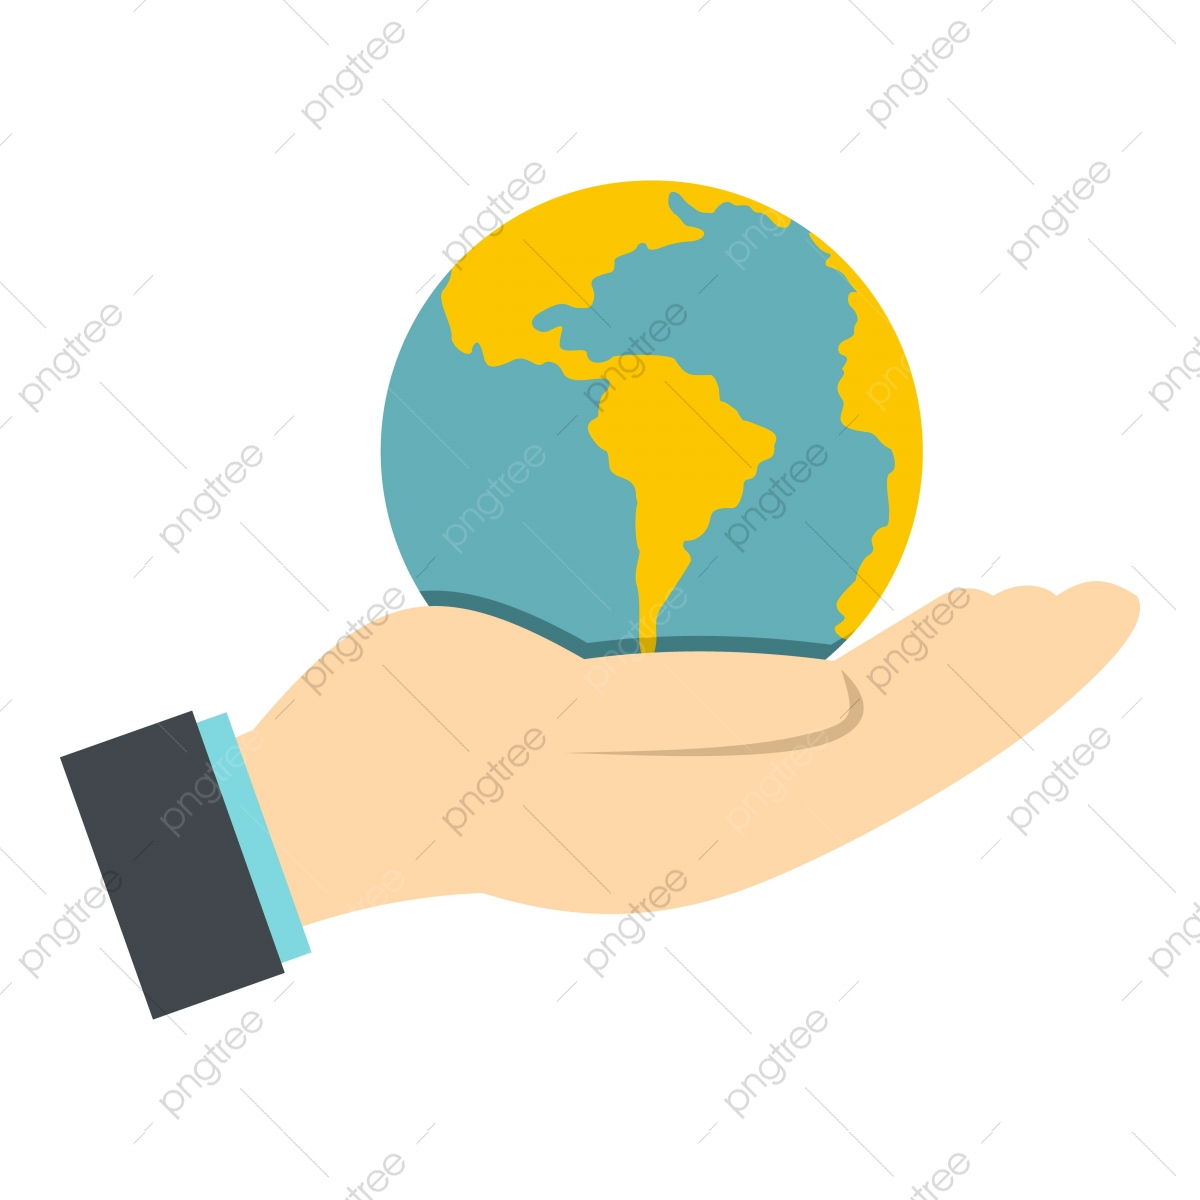 Hand Holding Globe Icon Isolated Hand Icons Globe Icons Isolated Png And Vector With Transparent Background For Free Download Please remember to share it with your friends if you like. https pngtree com freepng hand holding globe icon isolated 5261089 html